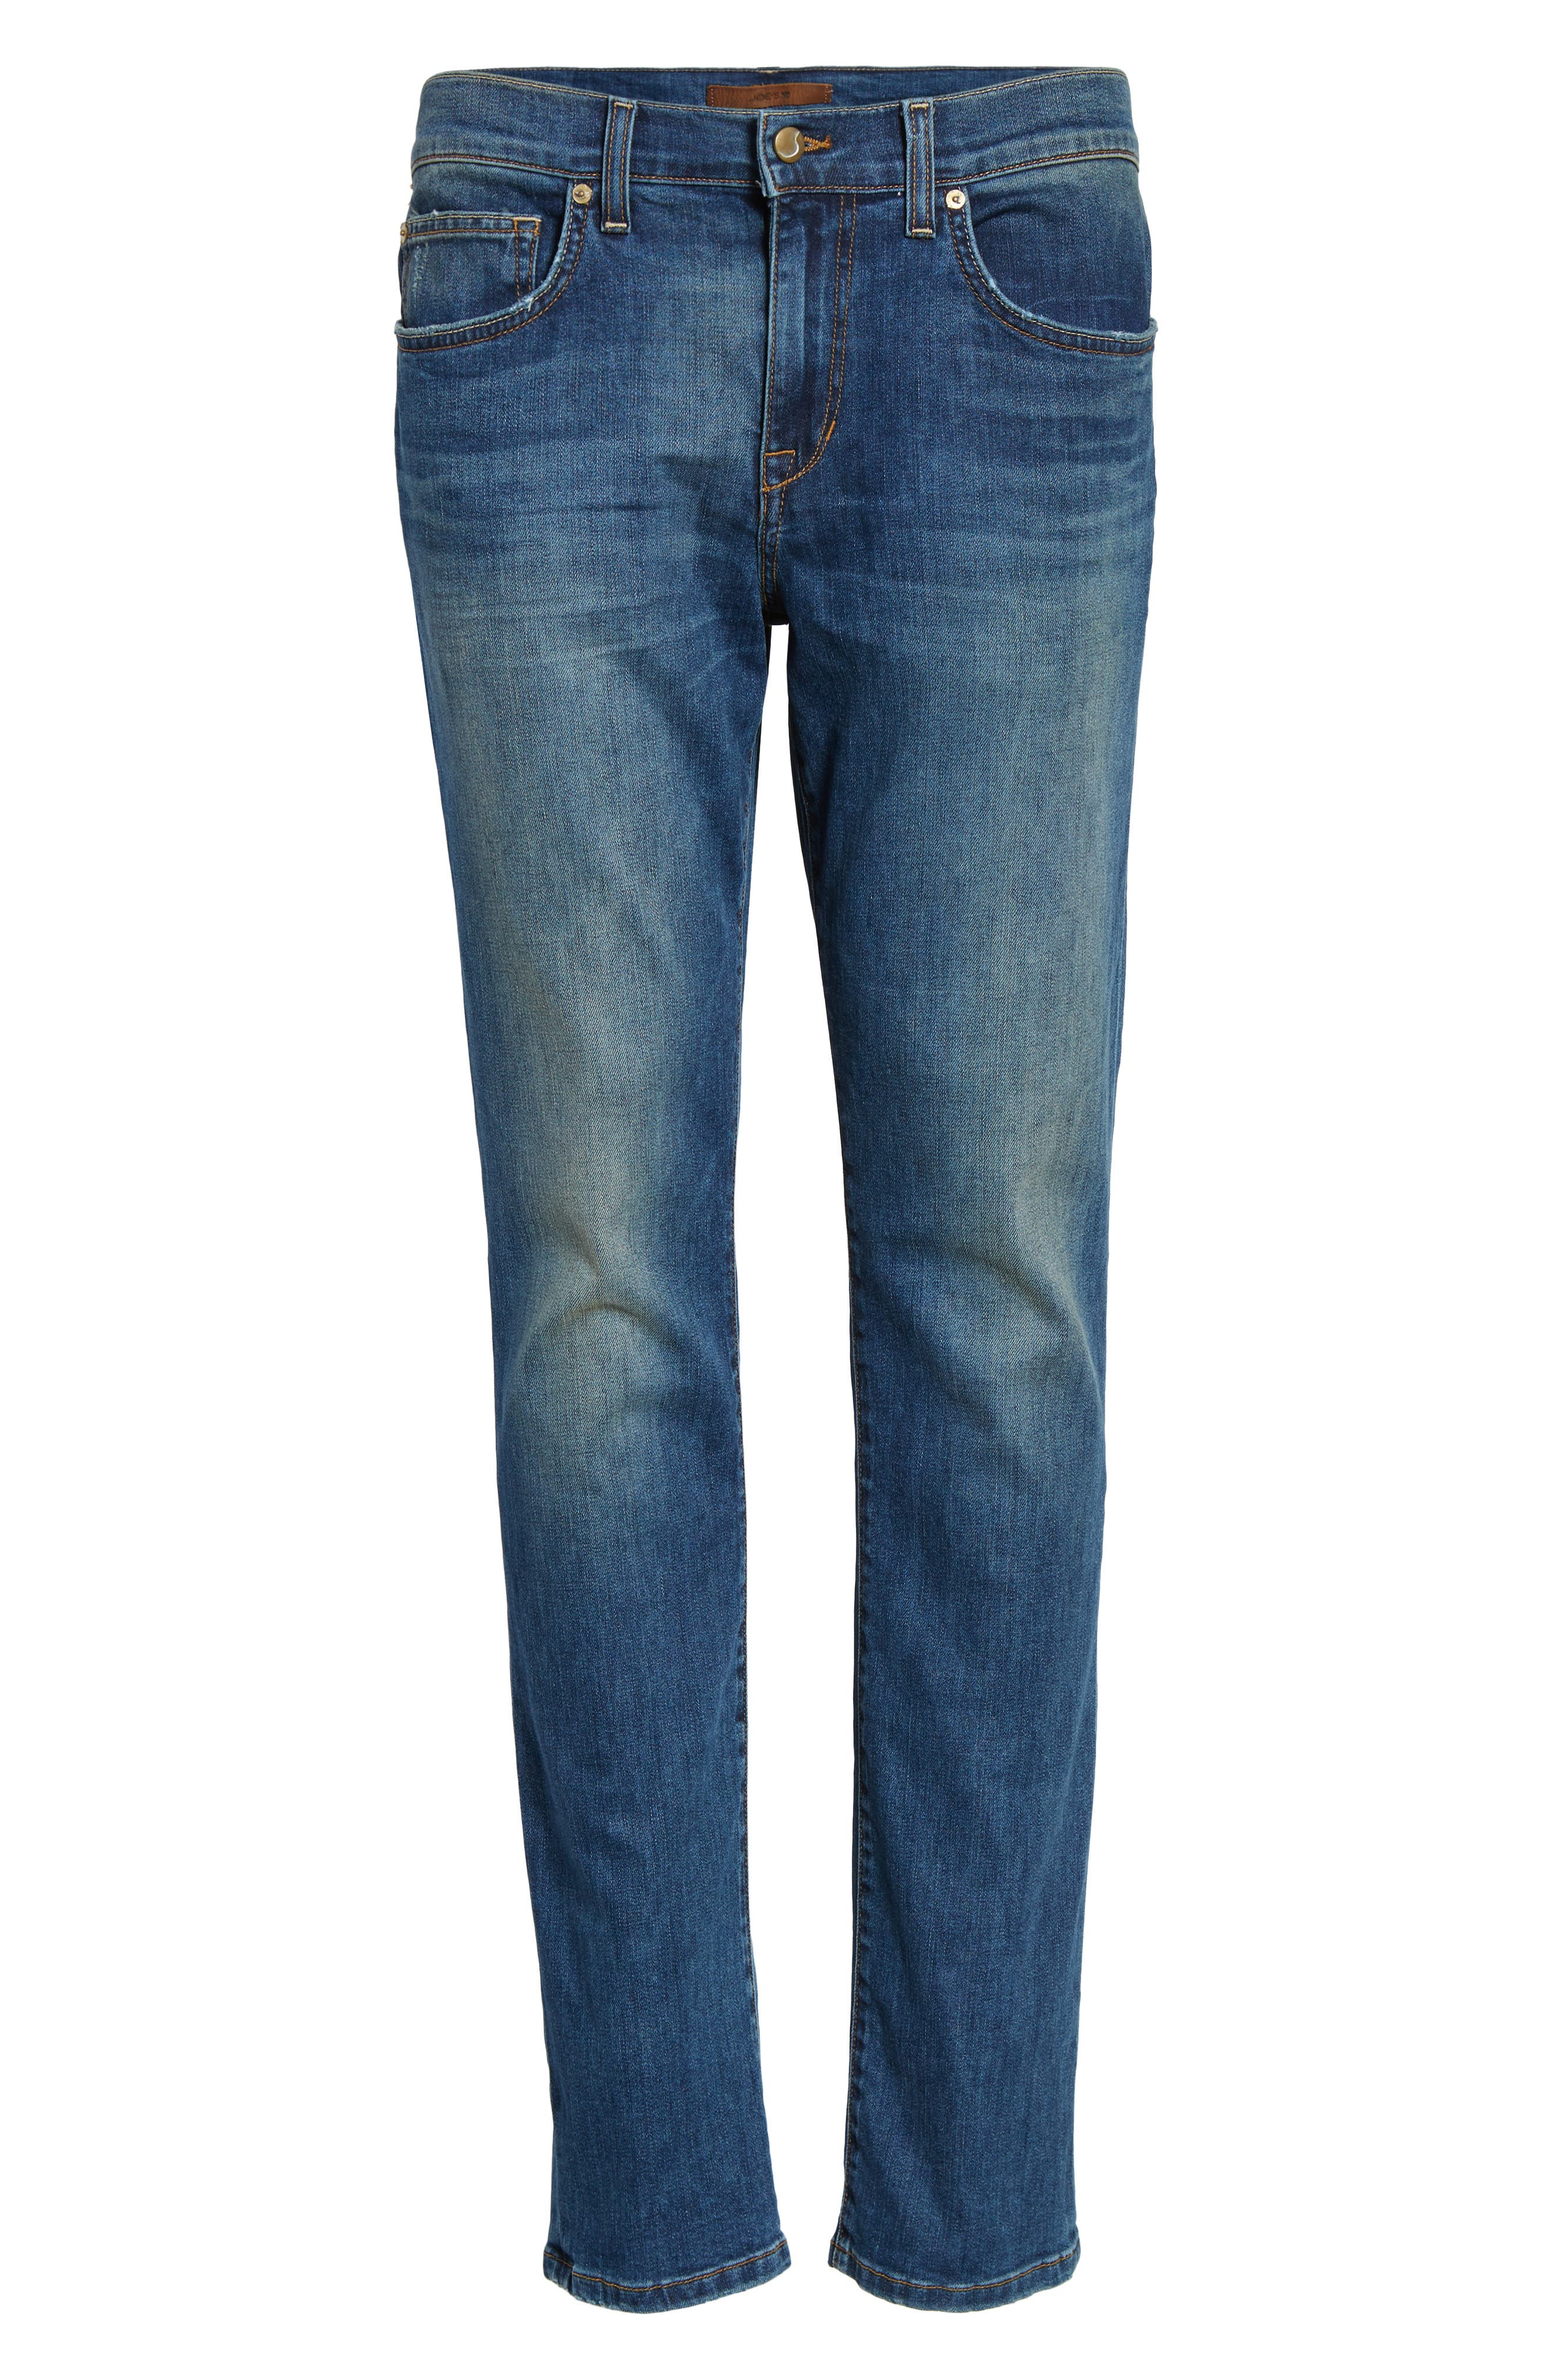 Slim Fit Jeans,                             Alternate thumbnail 6, color,                             439